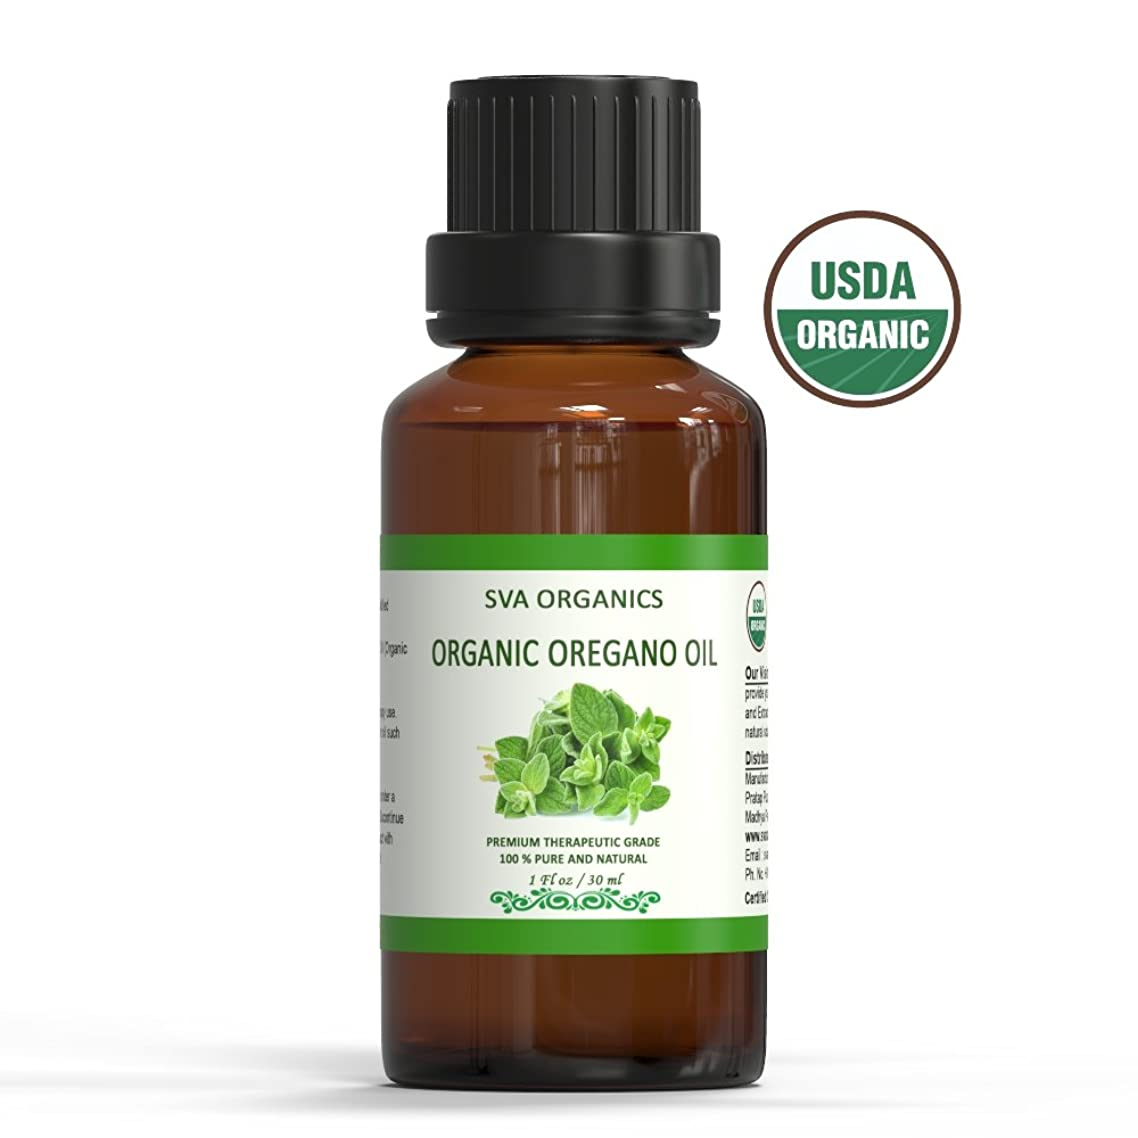 Organic Oregano Oil USDA Certified (30 ml)- 100% Pure & Natural, Steam Distilled | for Skin,Hair,Body,Face by SVA Organics